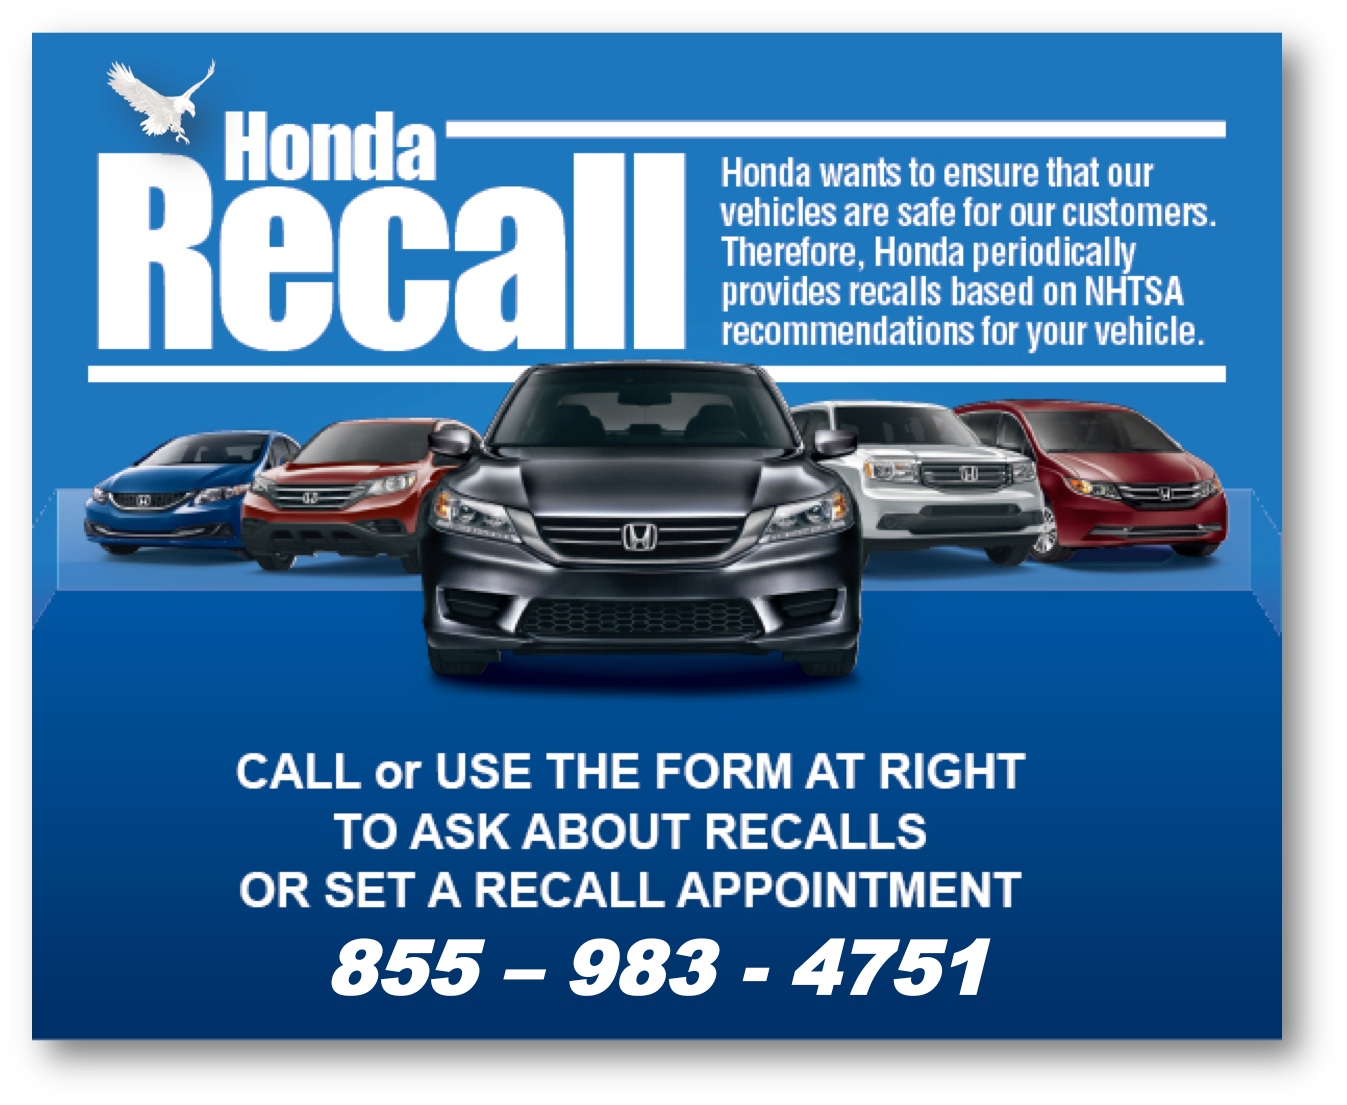 does my Honda have any recalls